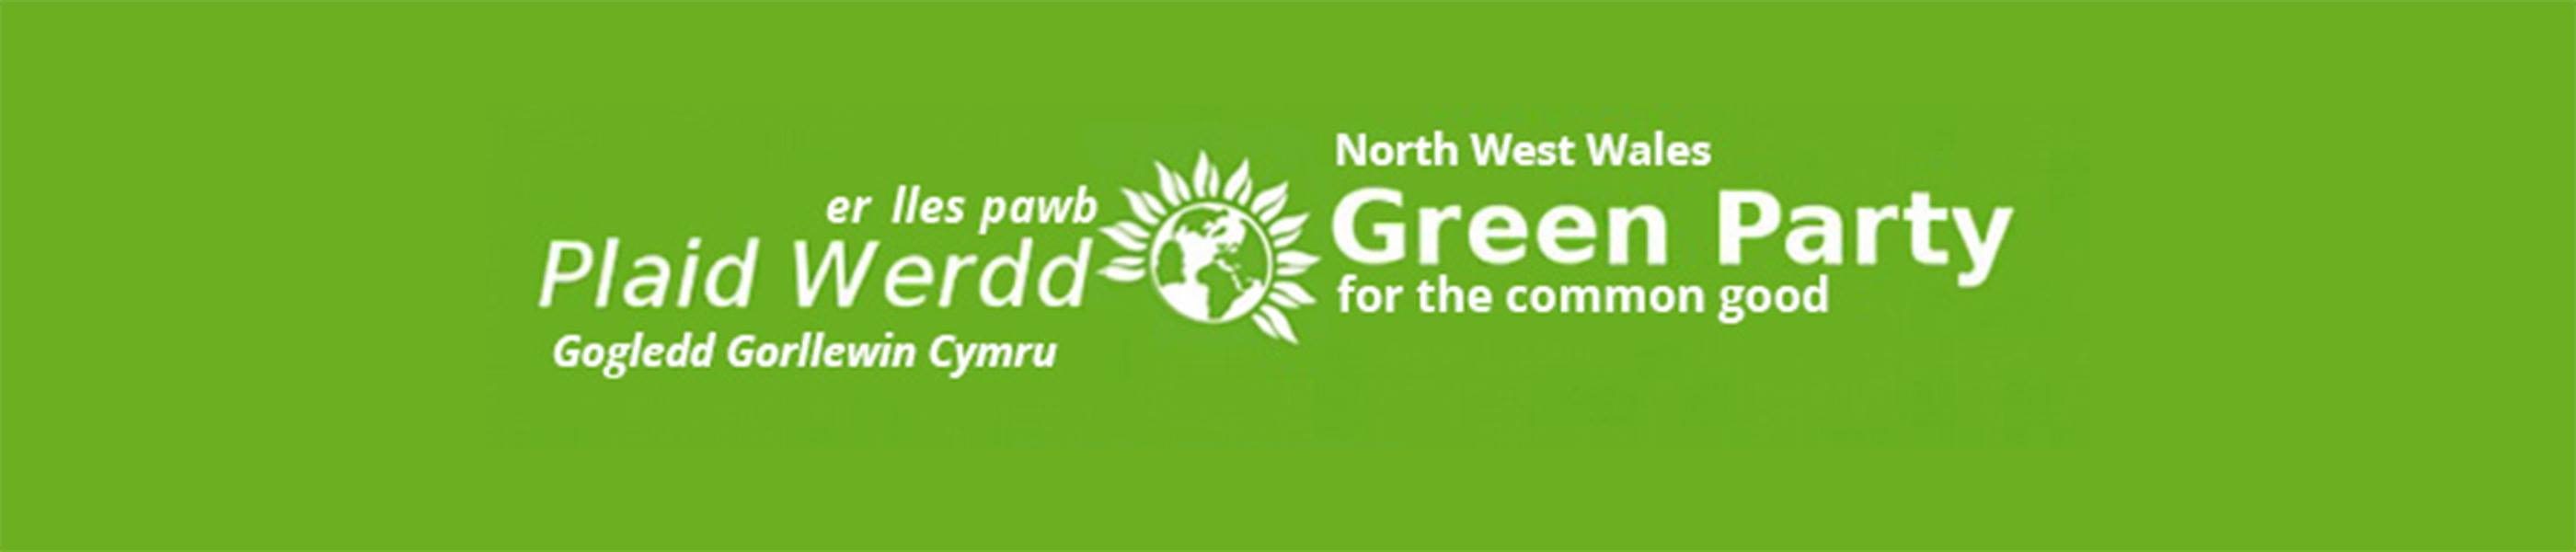 North West Wales Green Party